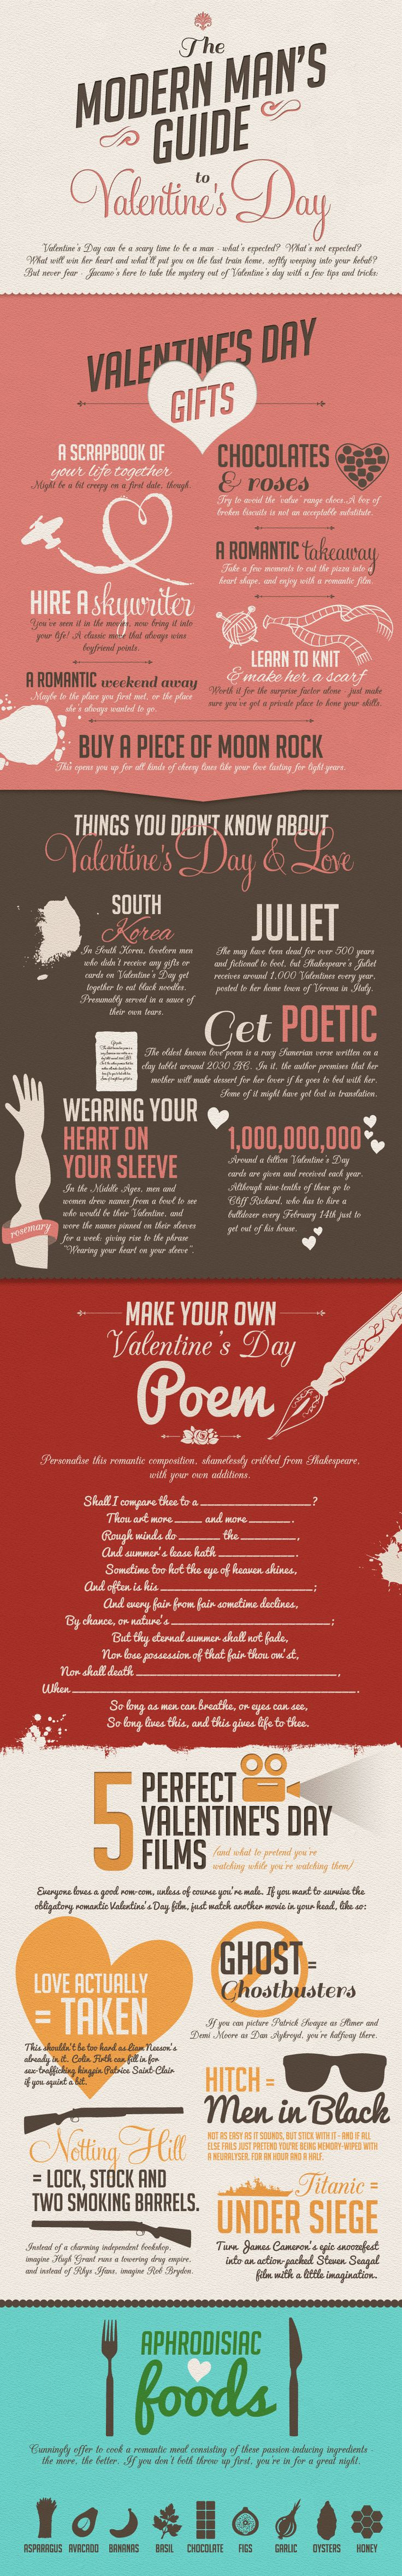 Roses are Red, Violets are Blue: 14 Infographics to Say I Love You | Visual.ly Blog